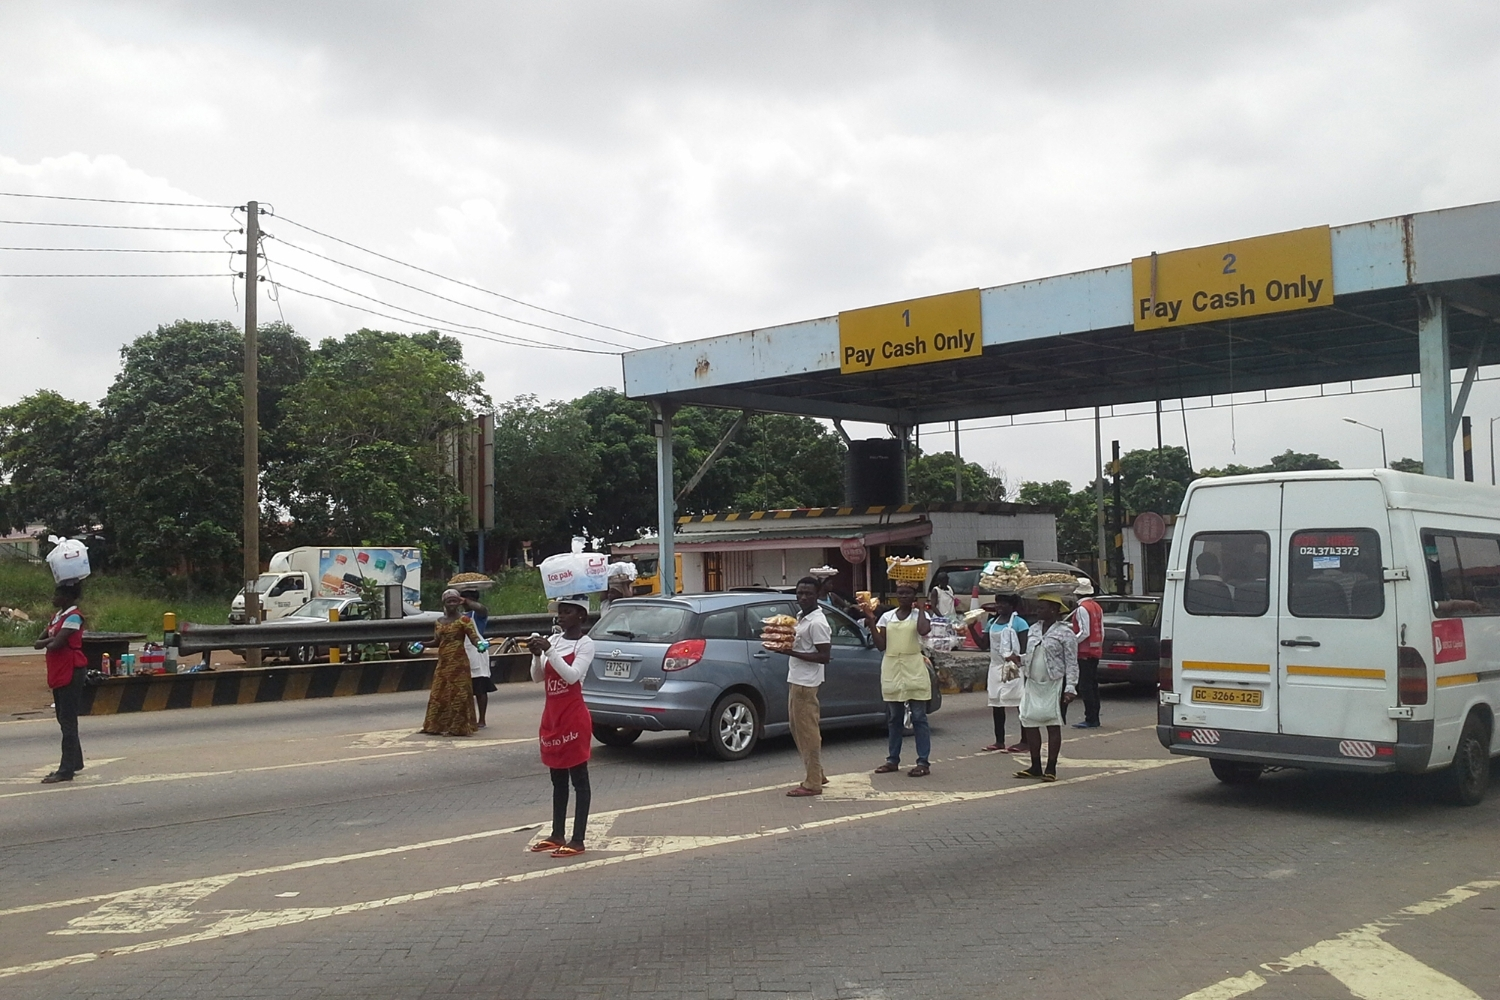 A tollbooth on the Accra-Tema highway.